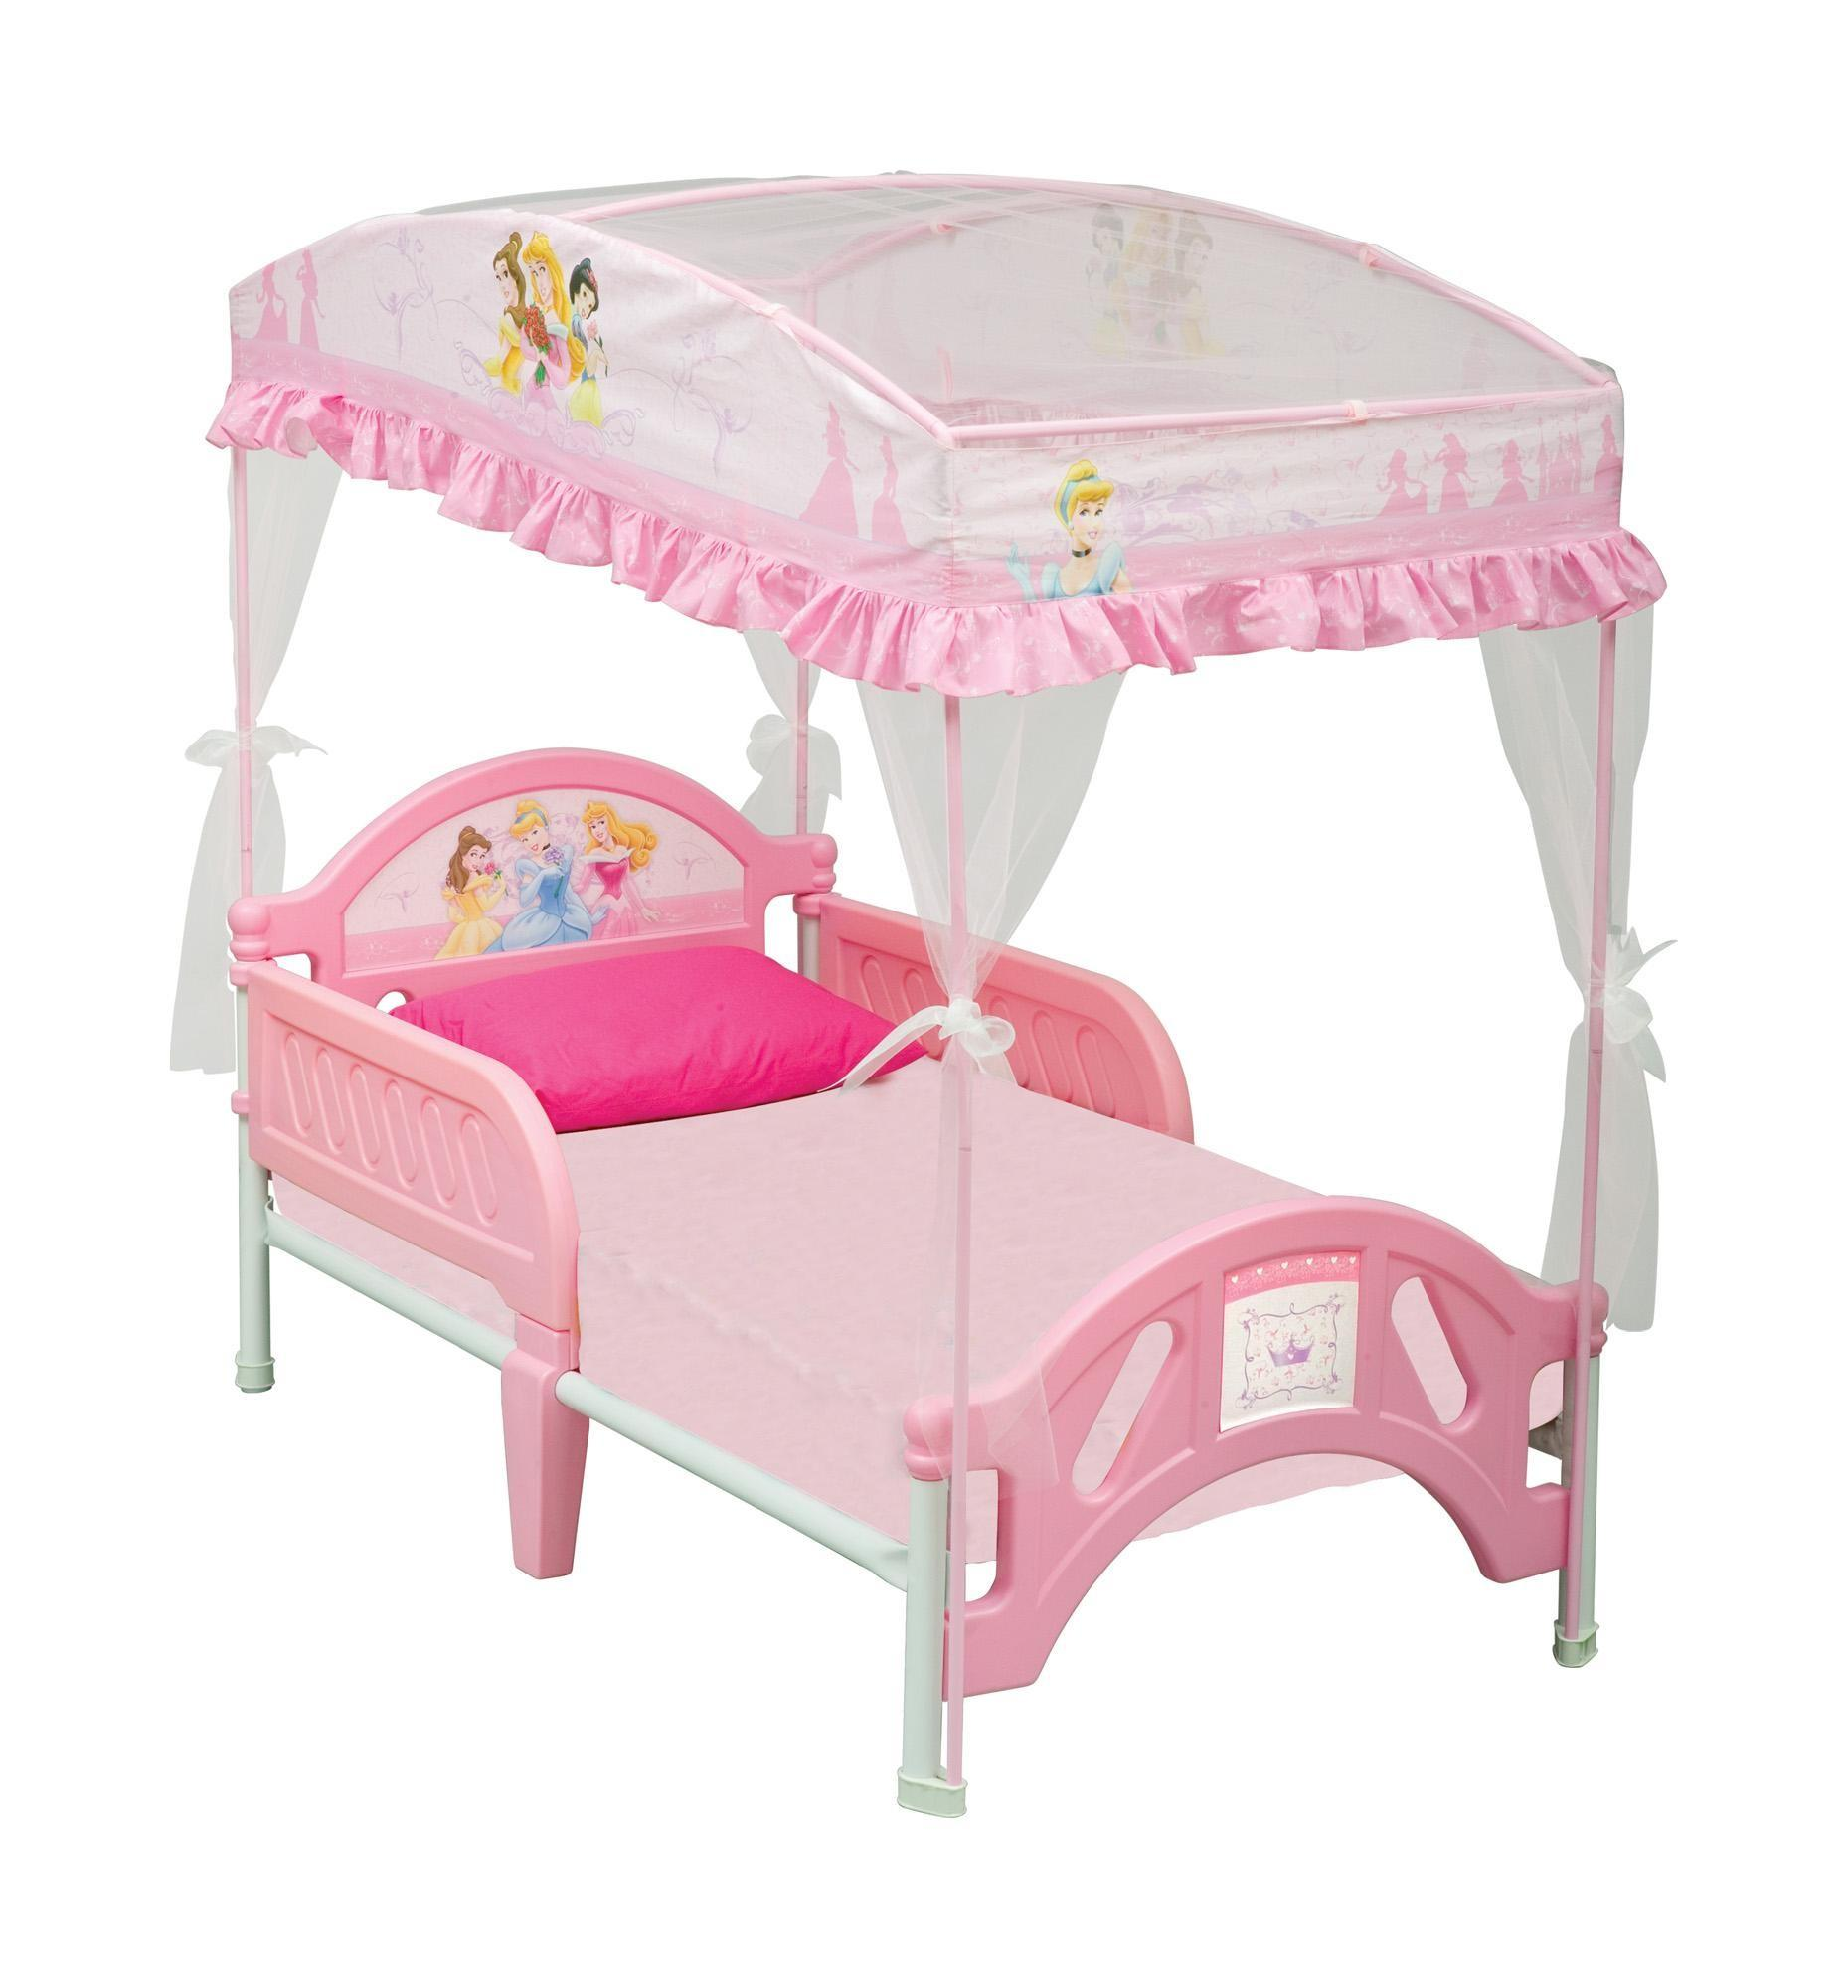 Exquisite Toddler Princess Bed Canopy Pink